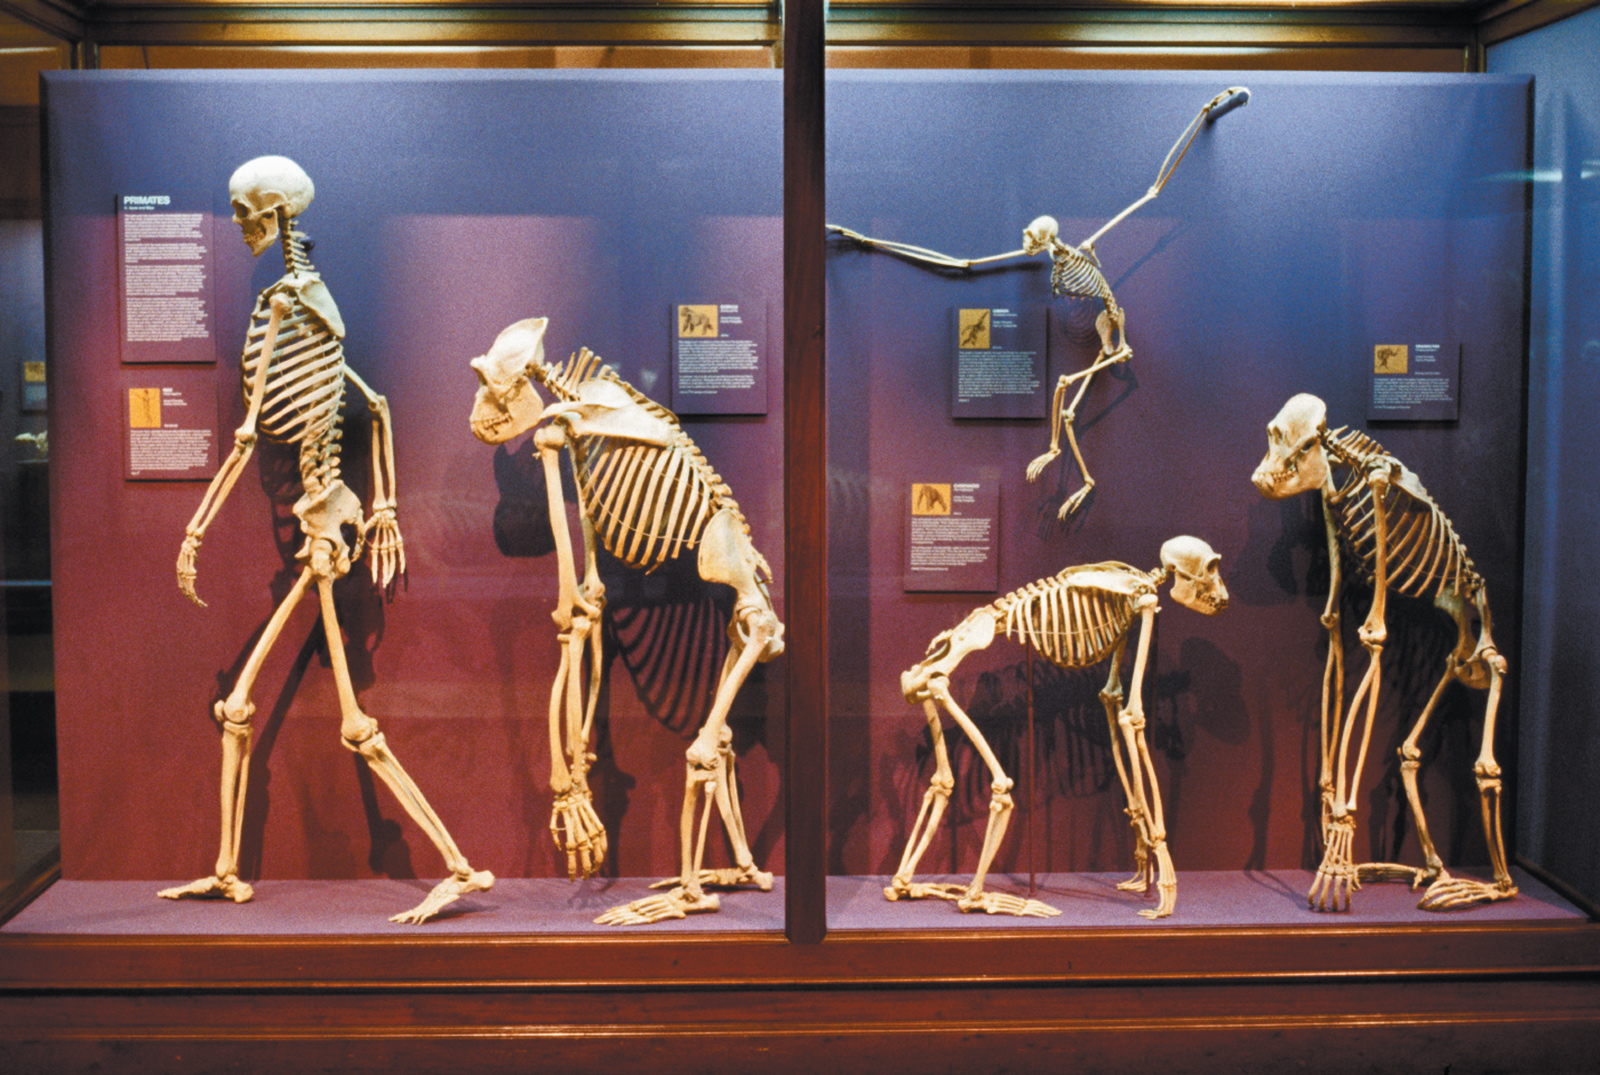 Primate skeletons at the Field Museum, Chicago, 1986